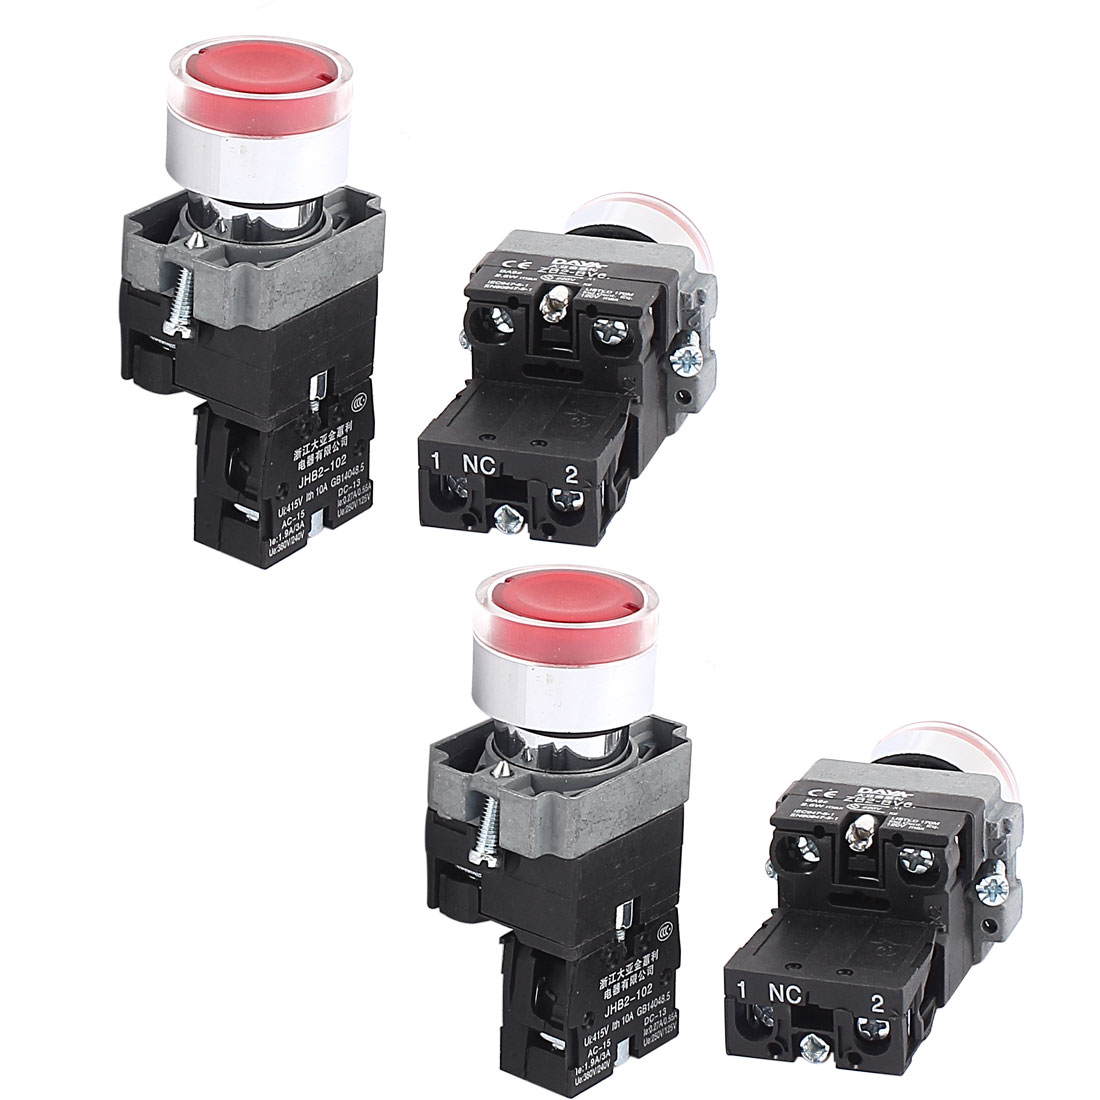 AC 415V 10A Momentary NO Red Light Push Button Switch Contact Block 4PCS